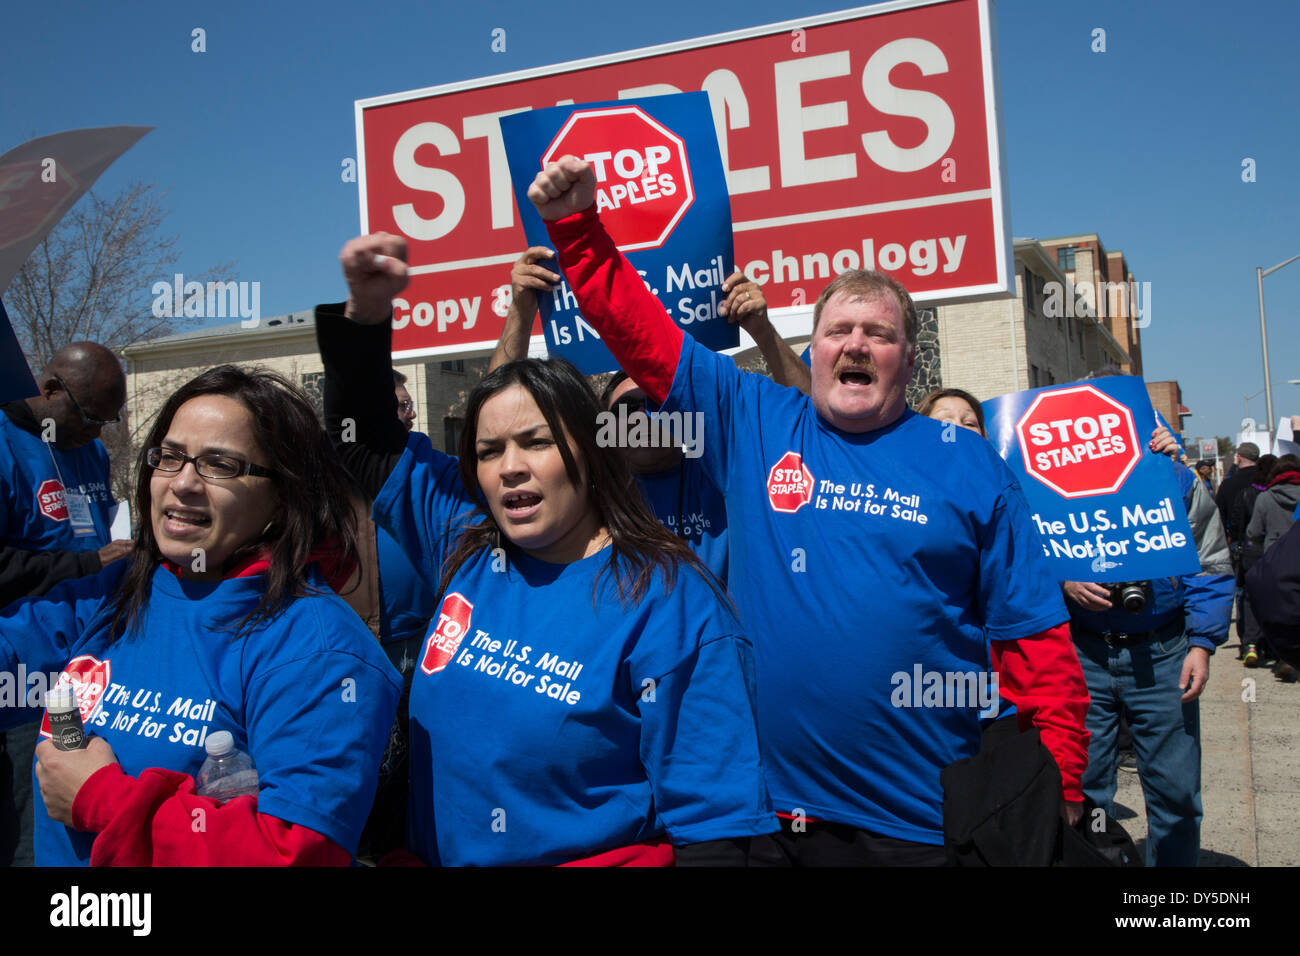 Union members picket Staples office supply store to protest plans to privatize post office services. - Stock Image